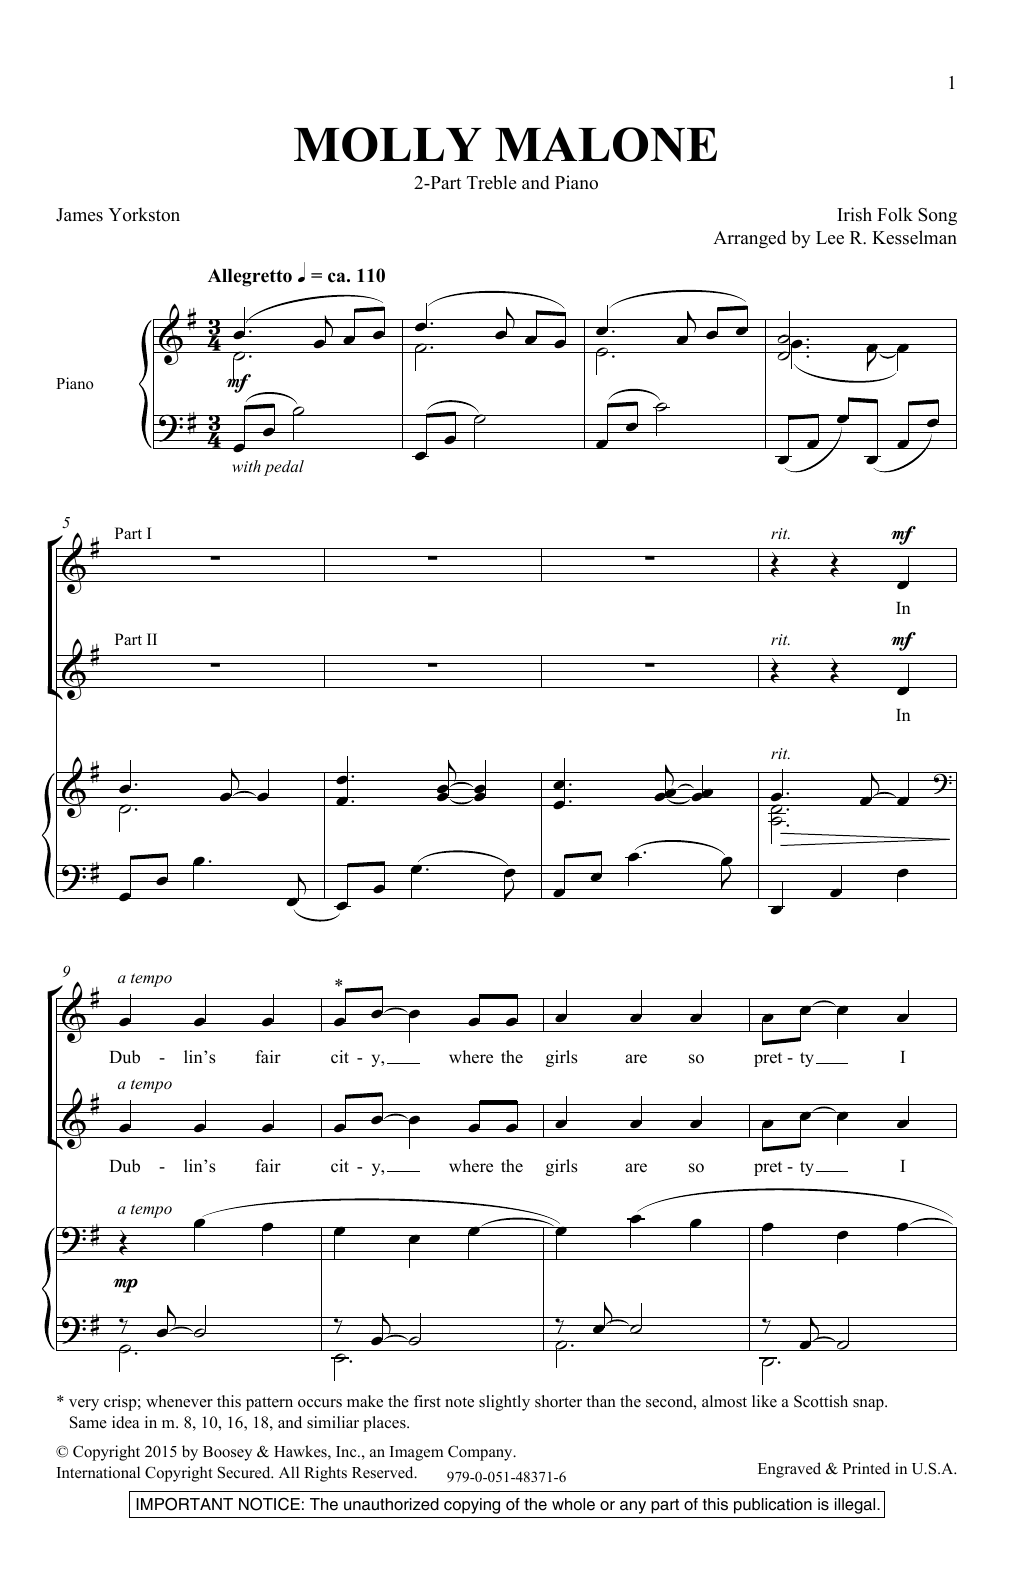 Lee Kesselman Molly Malone sheet music notes and chords. Download Printable PDF.